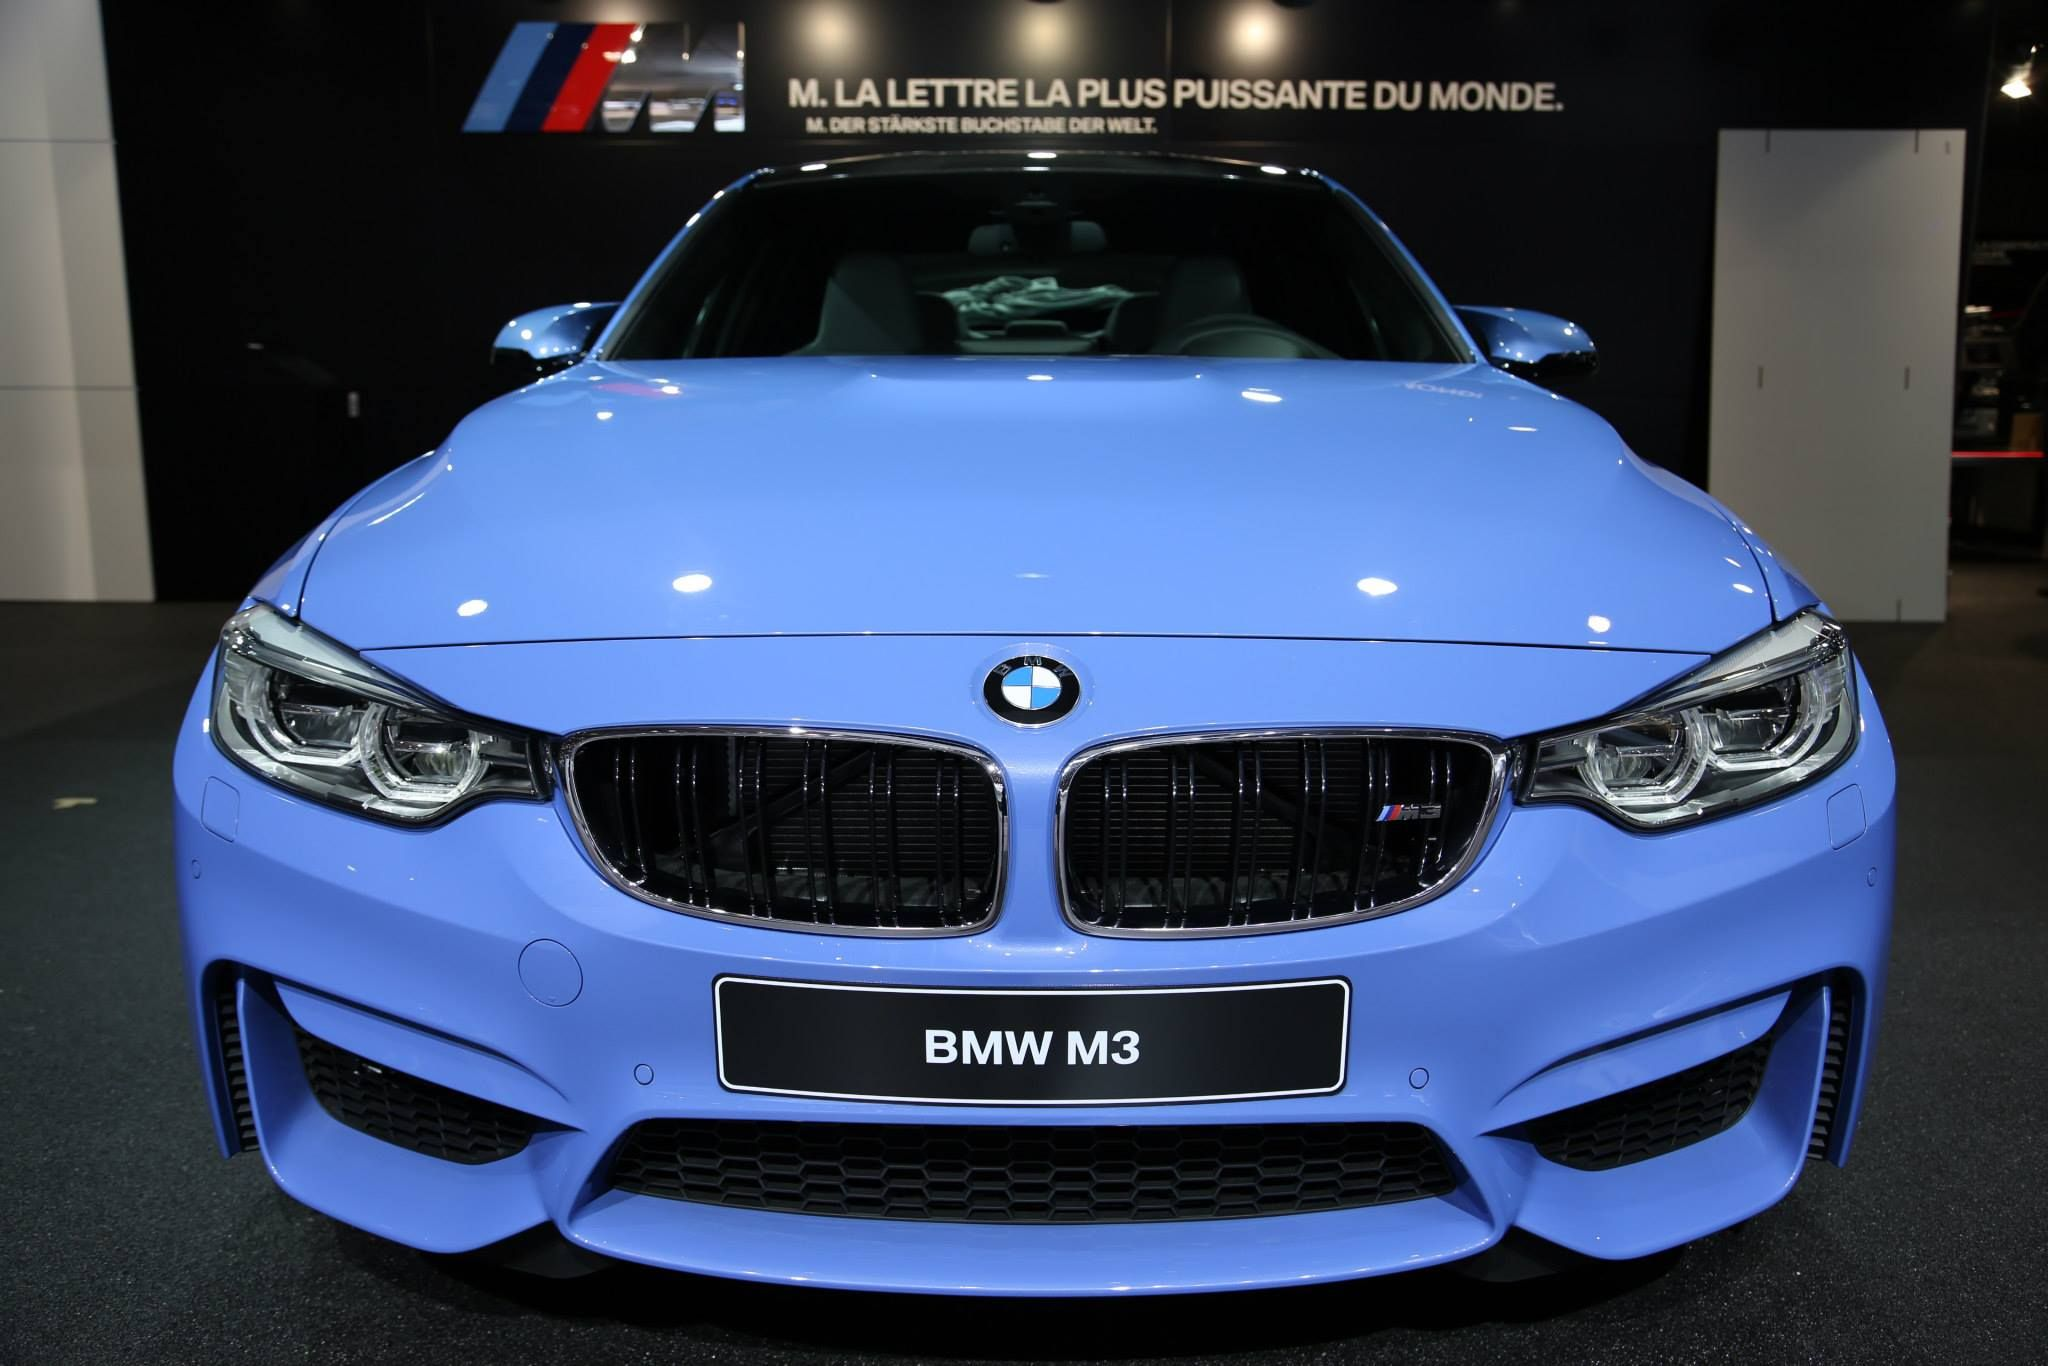 See This Is The Color I Want 3 Yas Marina Blue M4 Goals With